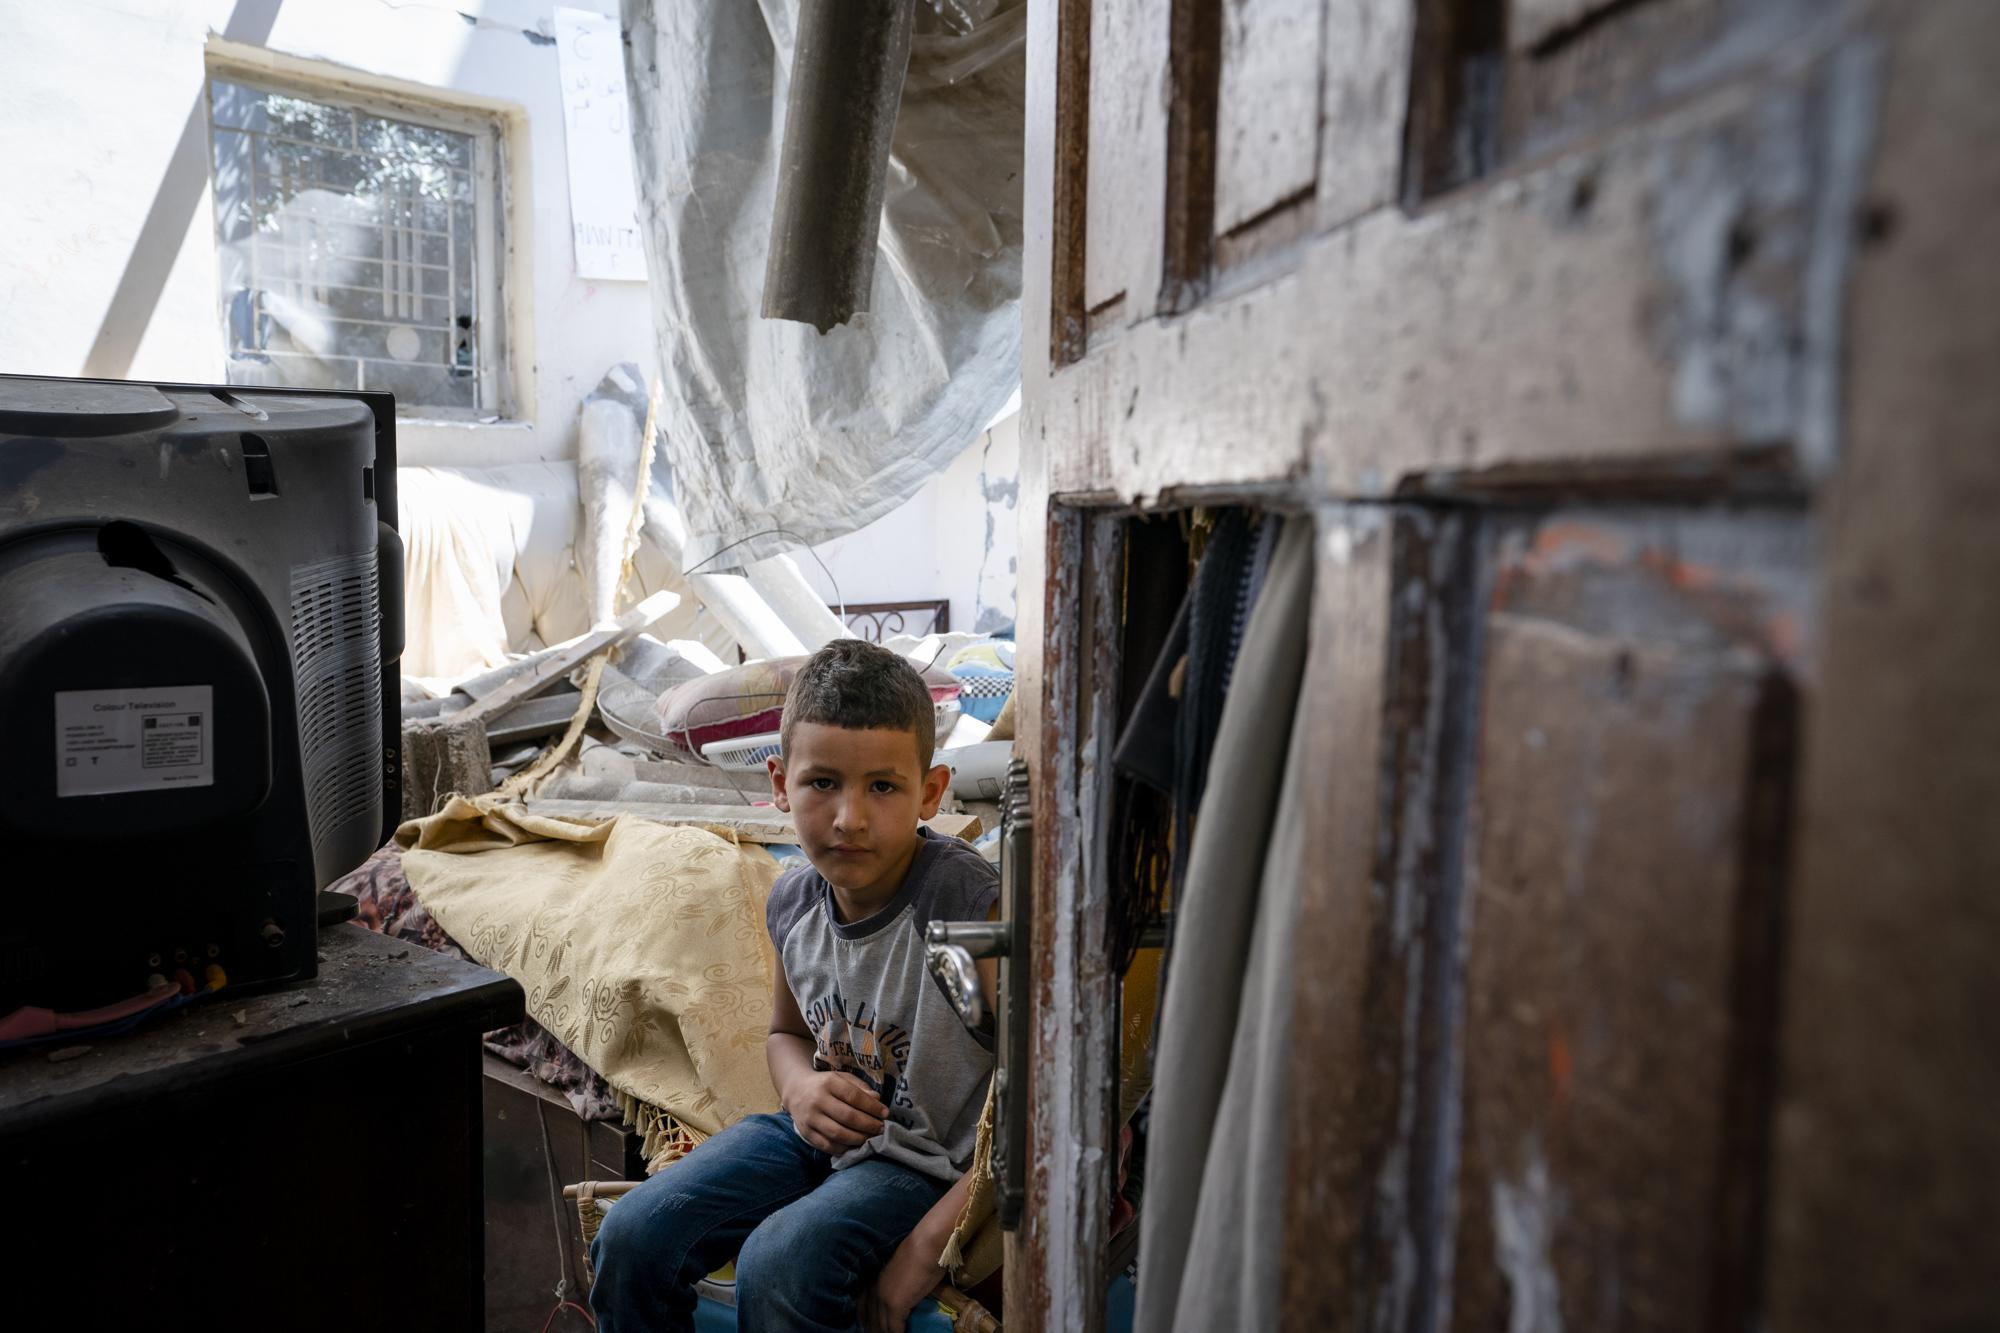 Abu Amsha, 6, sits for a portrait in his bedroom that was damaged when an airstrike destroyed the neighboring building prior to a cease-fire that halted an 11-day war between Gaza's Hamas rulers and Israel, Wednesday, May 26, 2021, in Beit Hanoun, Gaza Strip. (AP Photo/John Minchillo)